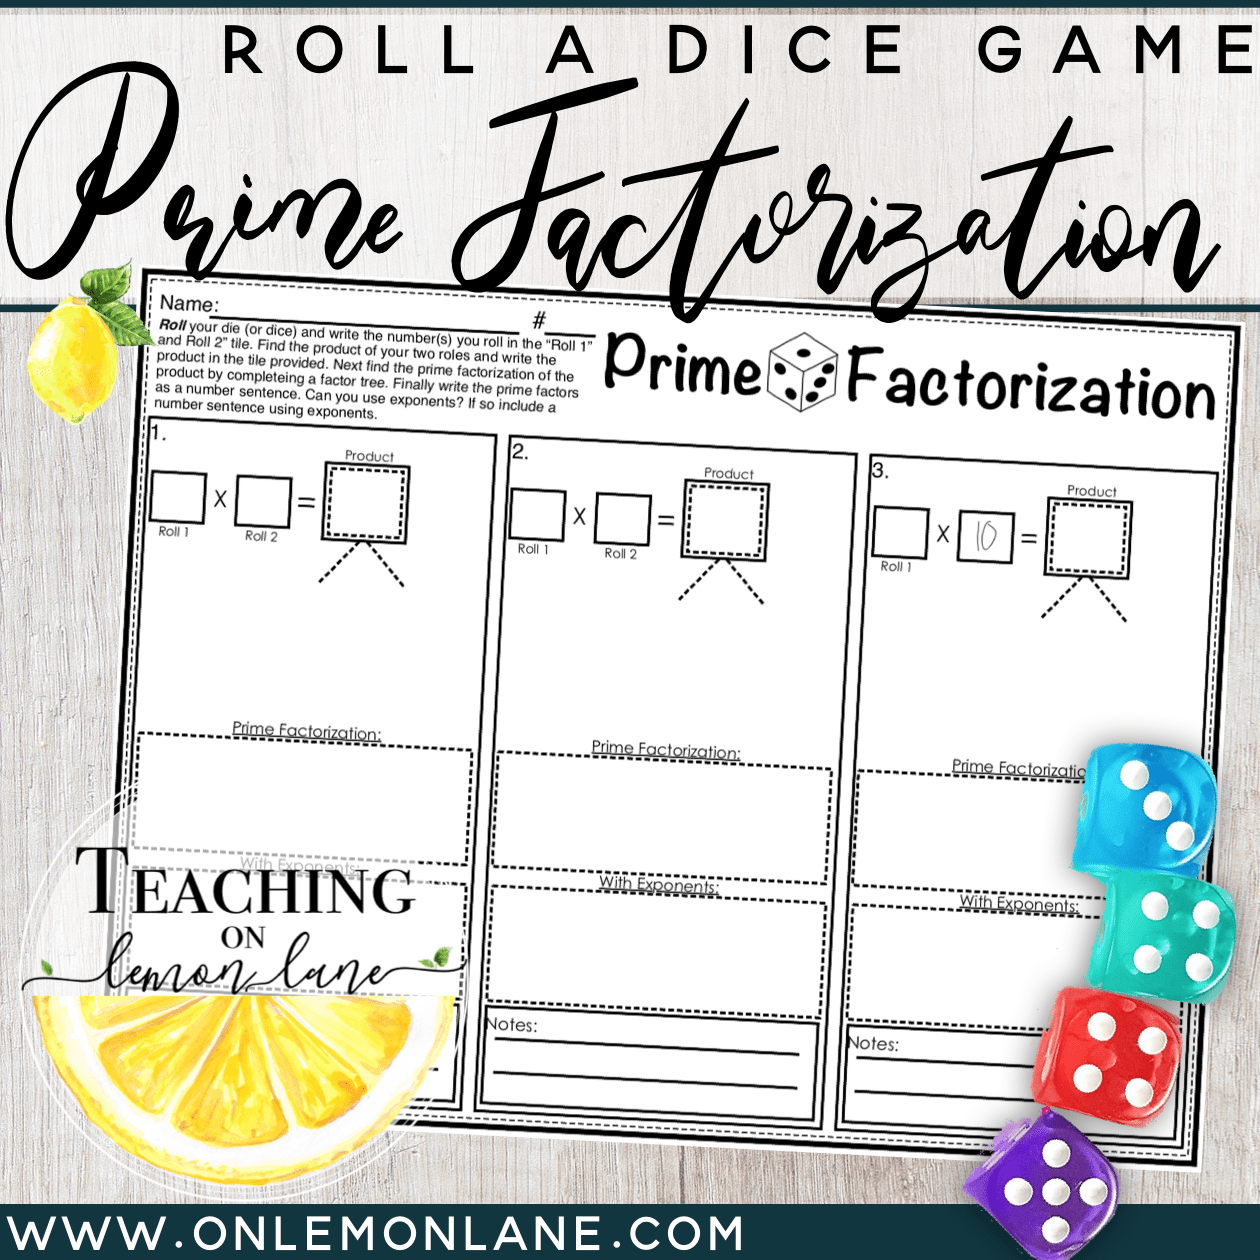 Prime Factorization With Exponents Dice Game Prime